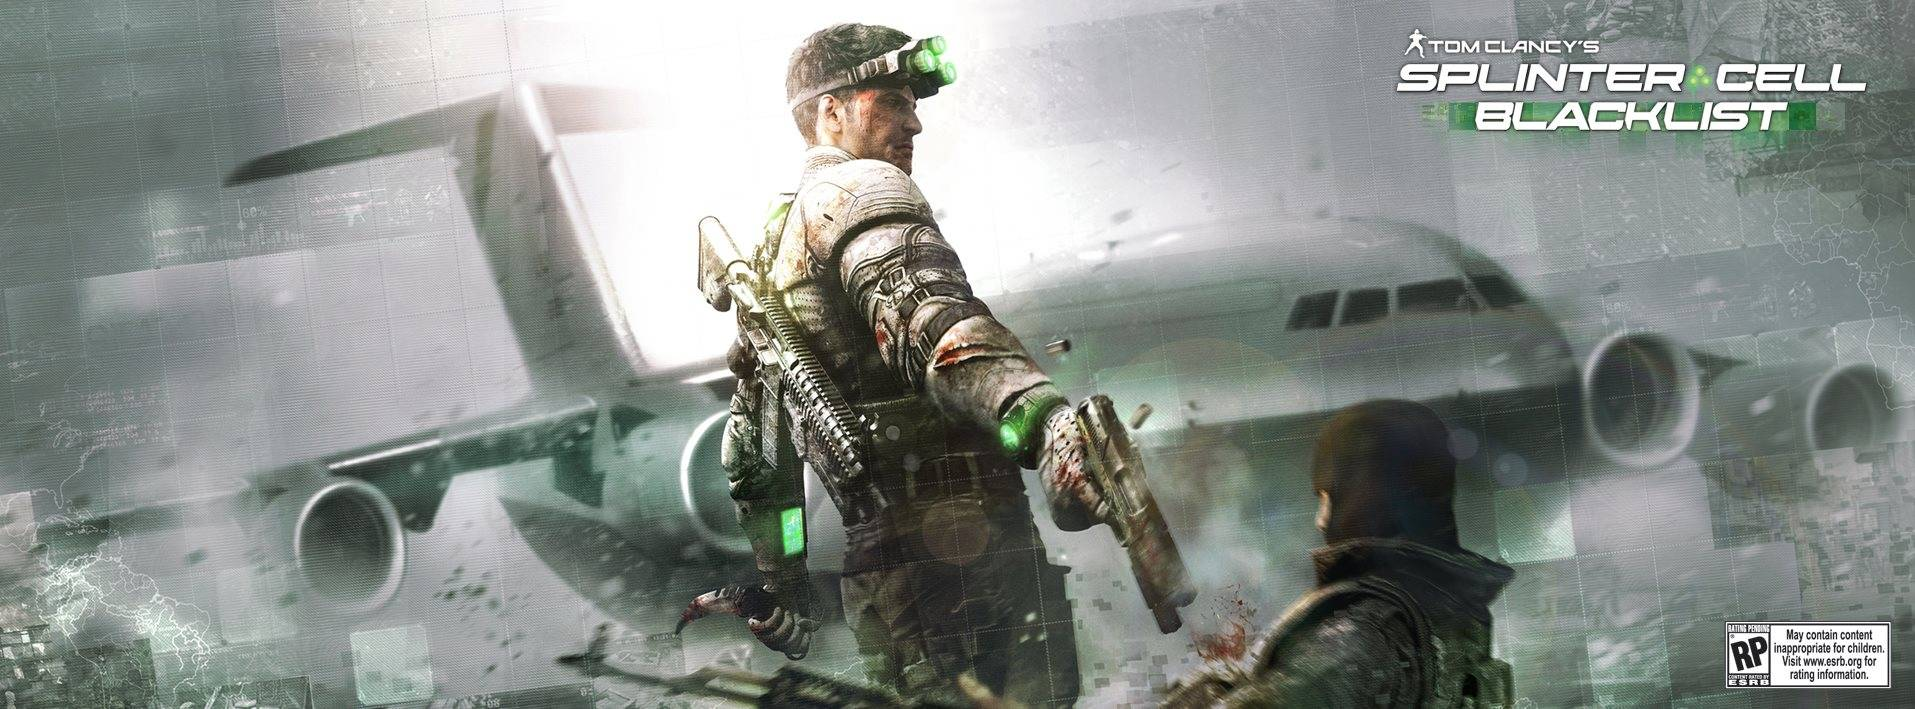 splinter-cell-blacklist-hd-wallpaper